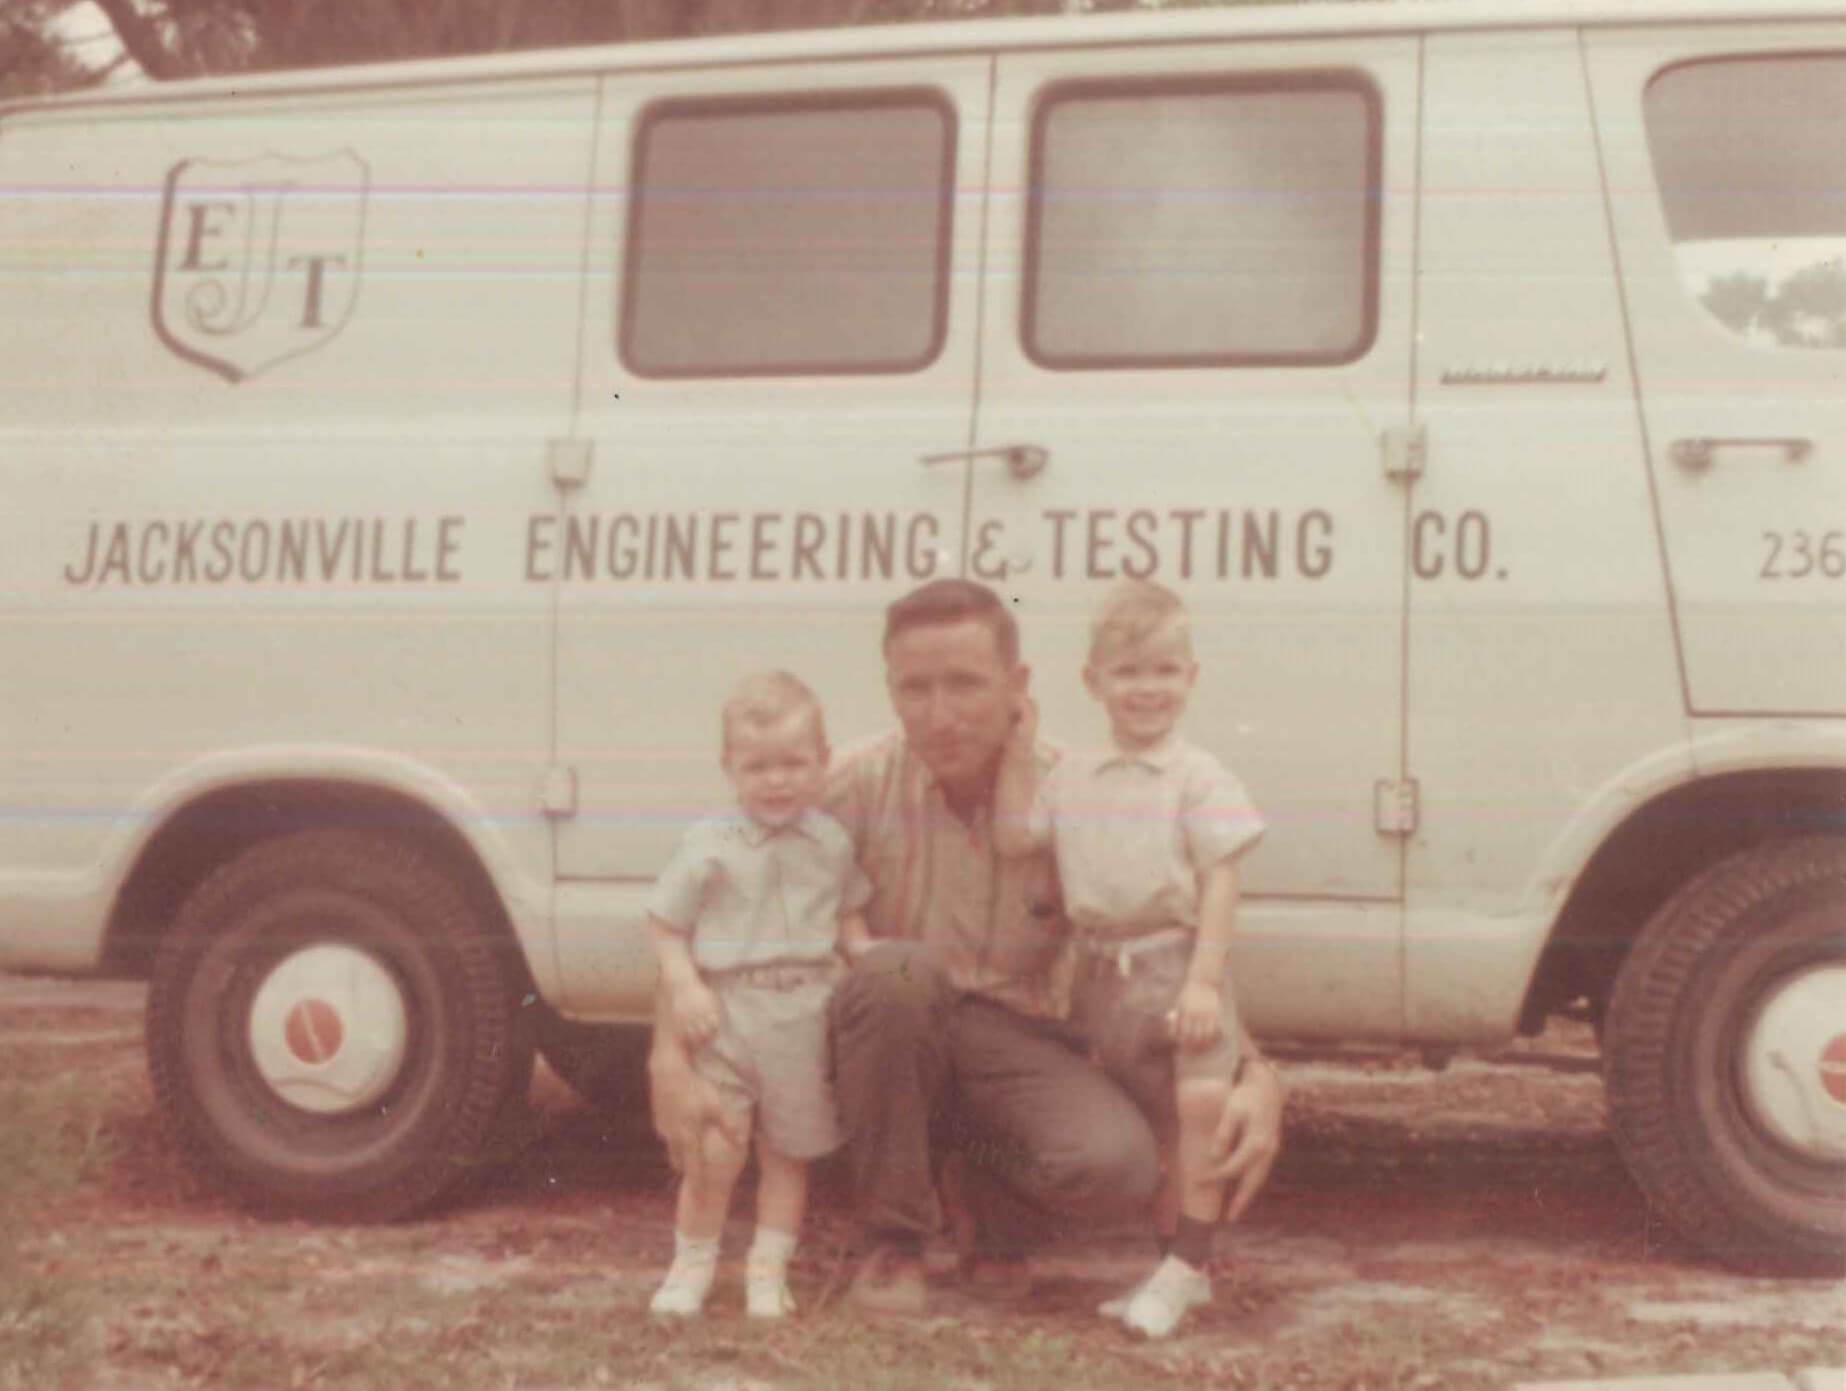 jacksonville-engineering-testing-co-old-photo-cropped